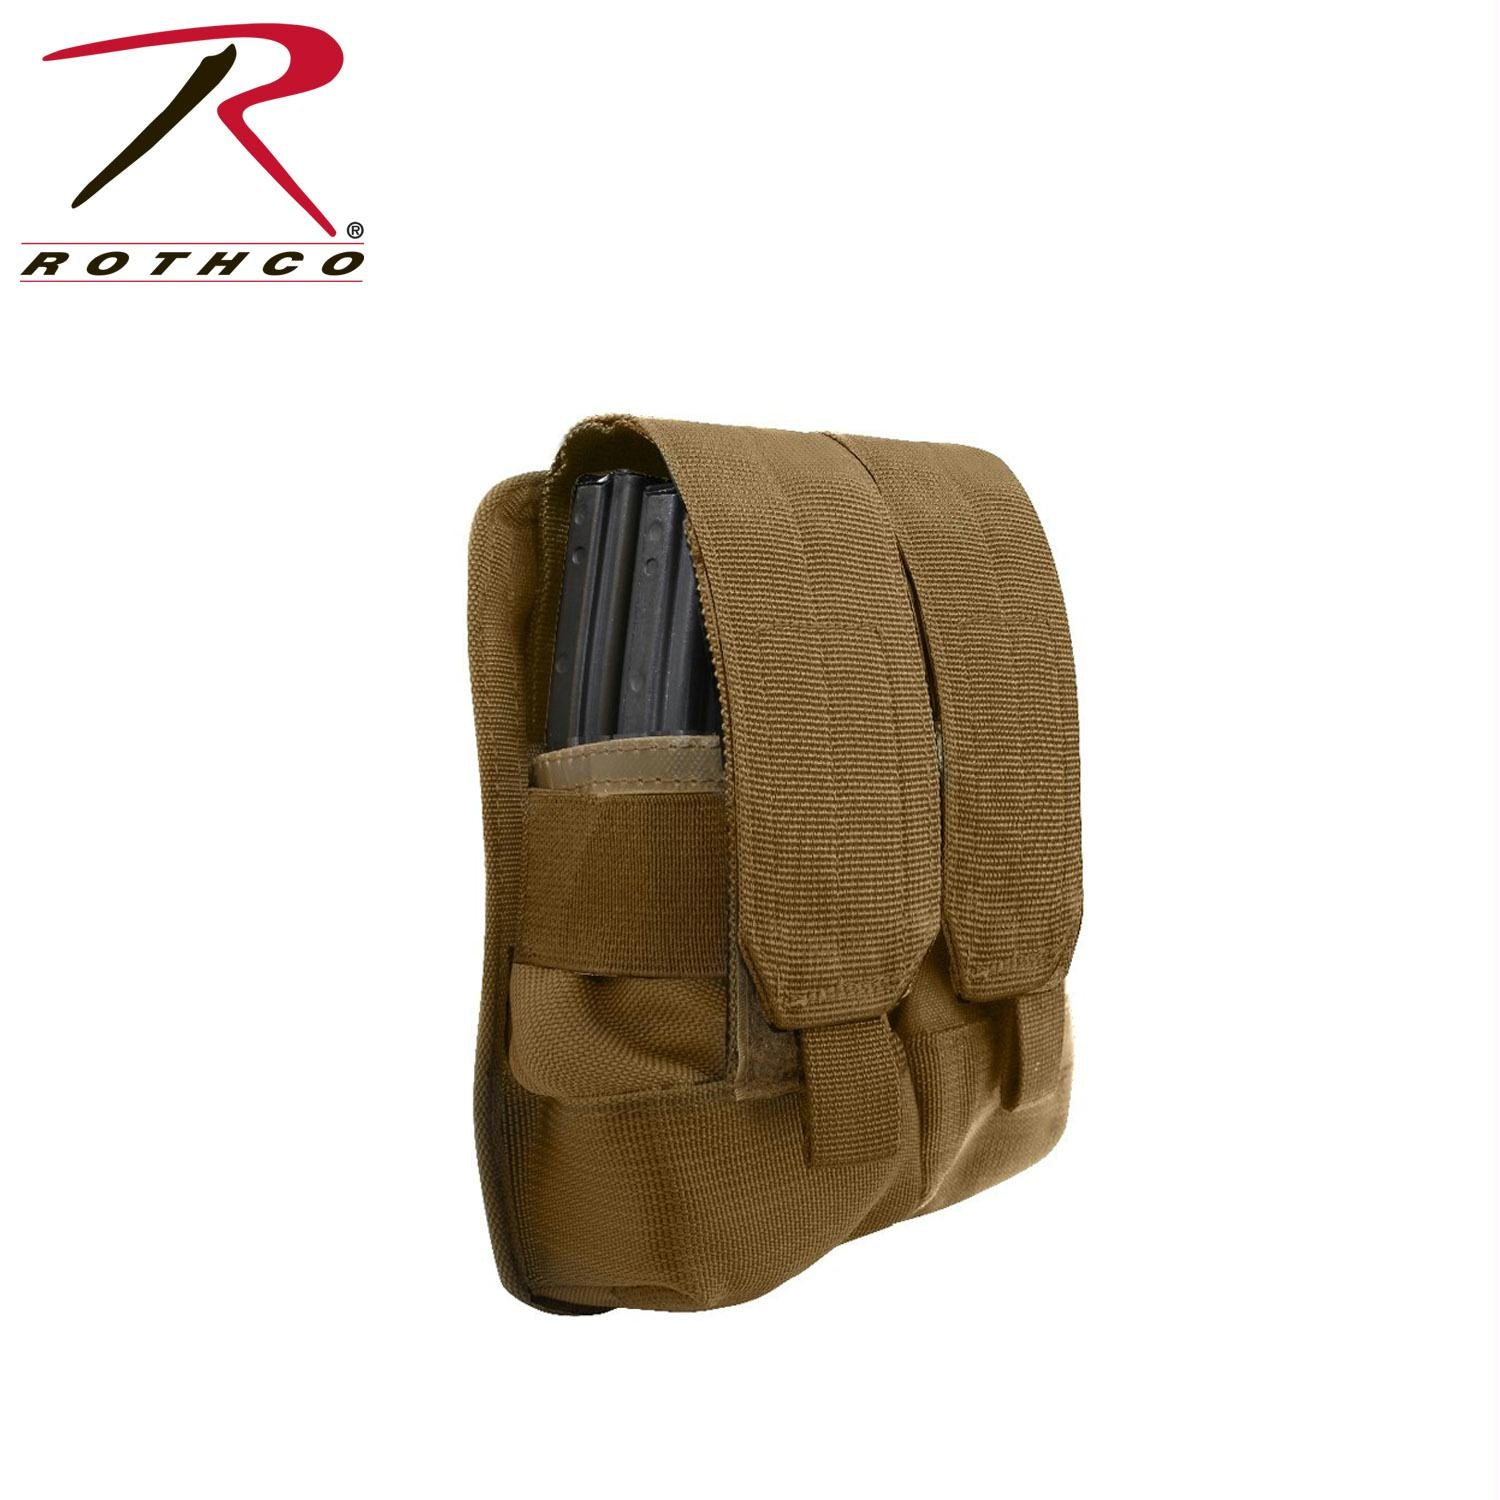 Rothco Universal Double Mag Rifle Pouch - Molle - Coyote Brown